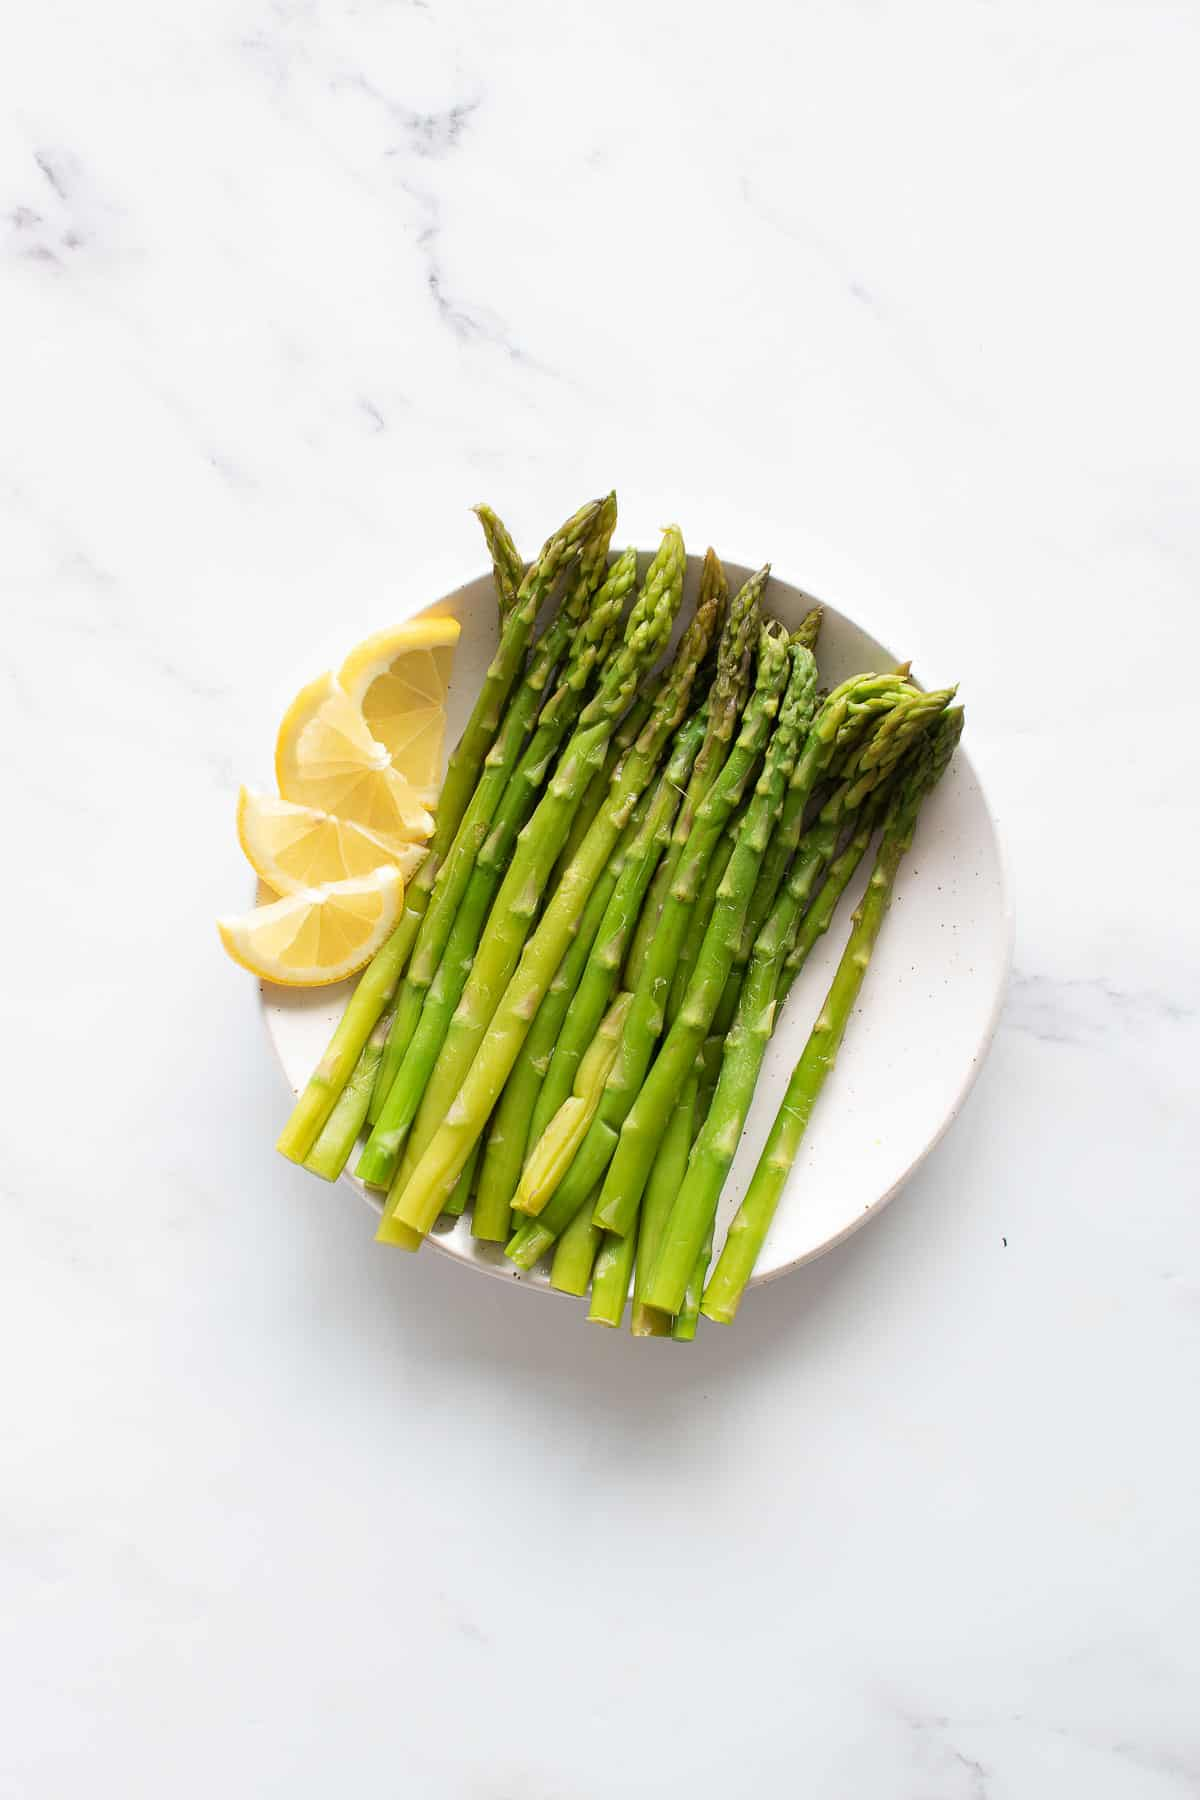 Pressure cooked asparagus on a plate.